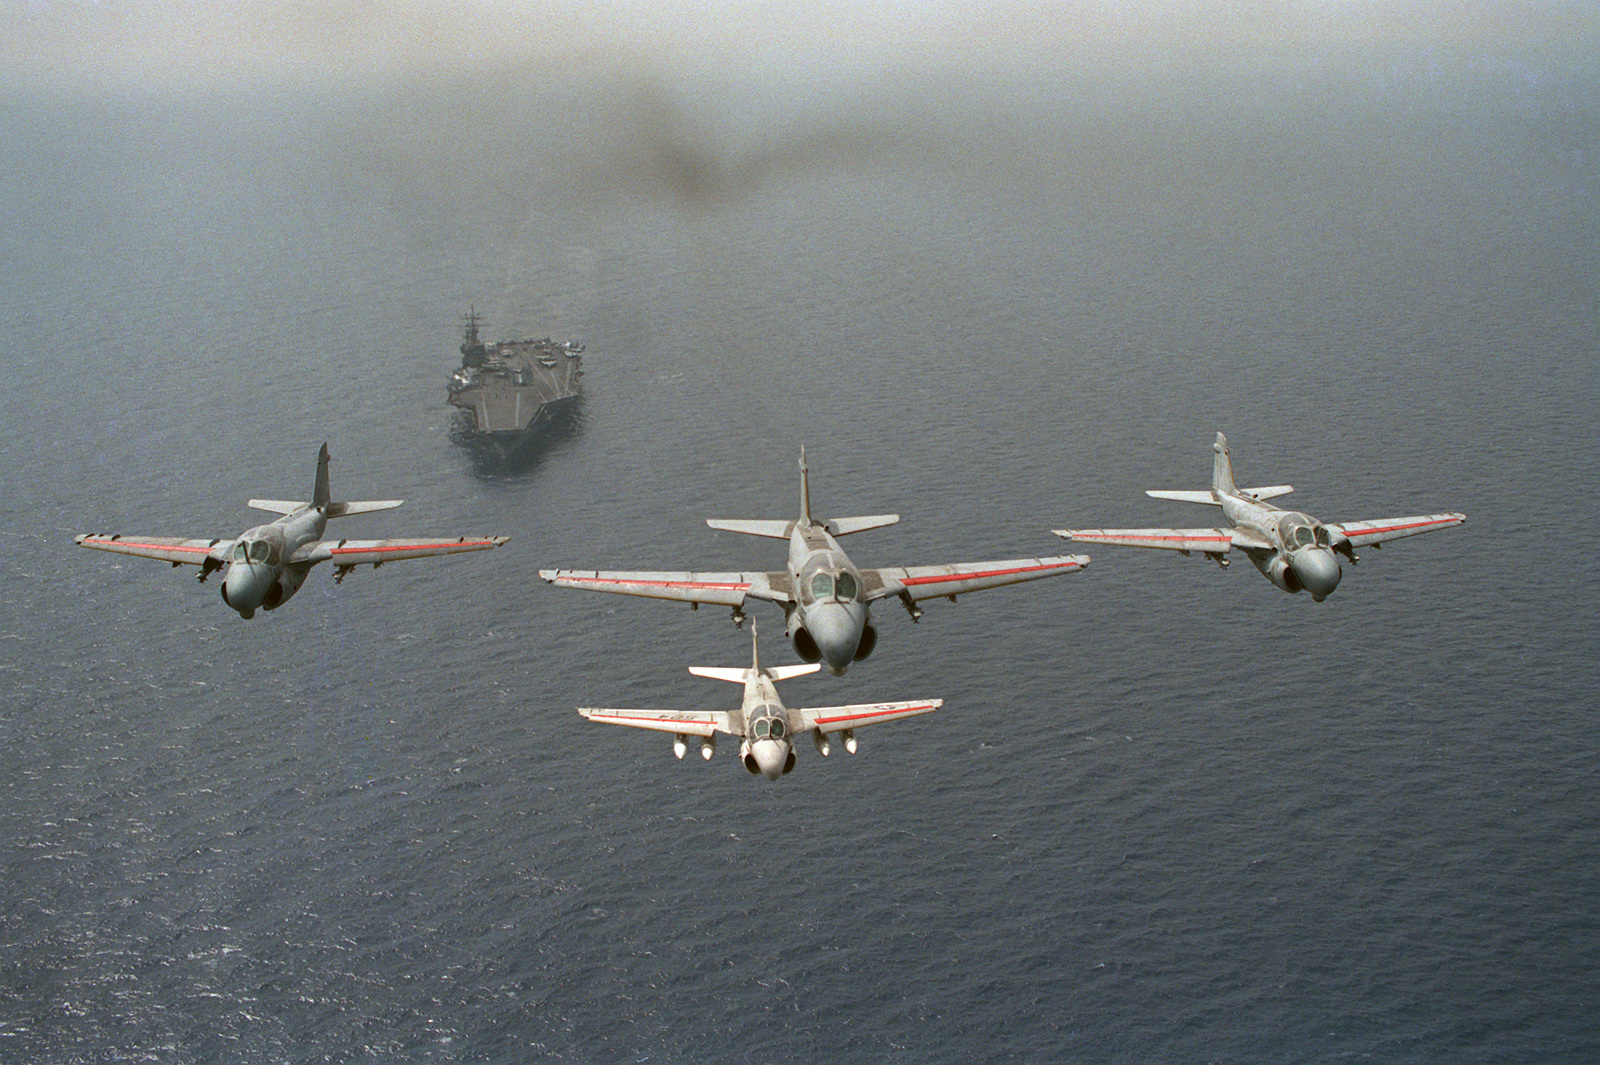 An air-to-air front view of four Attack Squadron 34 (VA-34) A-6E Intruder aircraft in formation over the nuclear-powered aircraft carrier USS DWIGHT D. EISENHOWER (CVN 69).  Carrier Air Wing 7 (CVW-7) is assigned to the EISENHOWER, which is in the Mediter